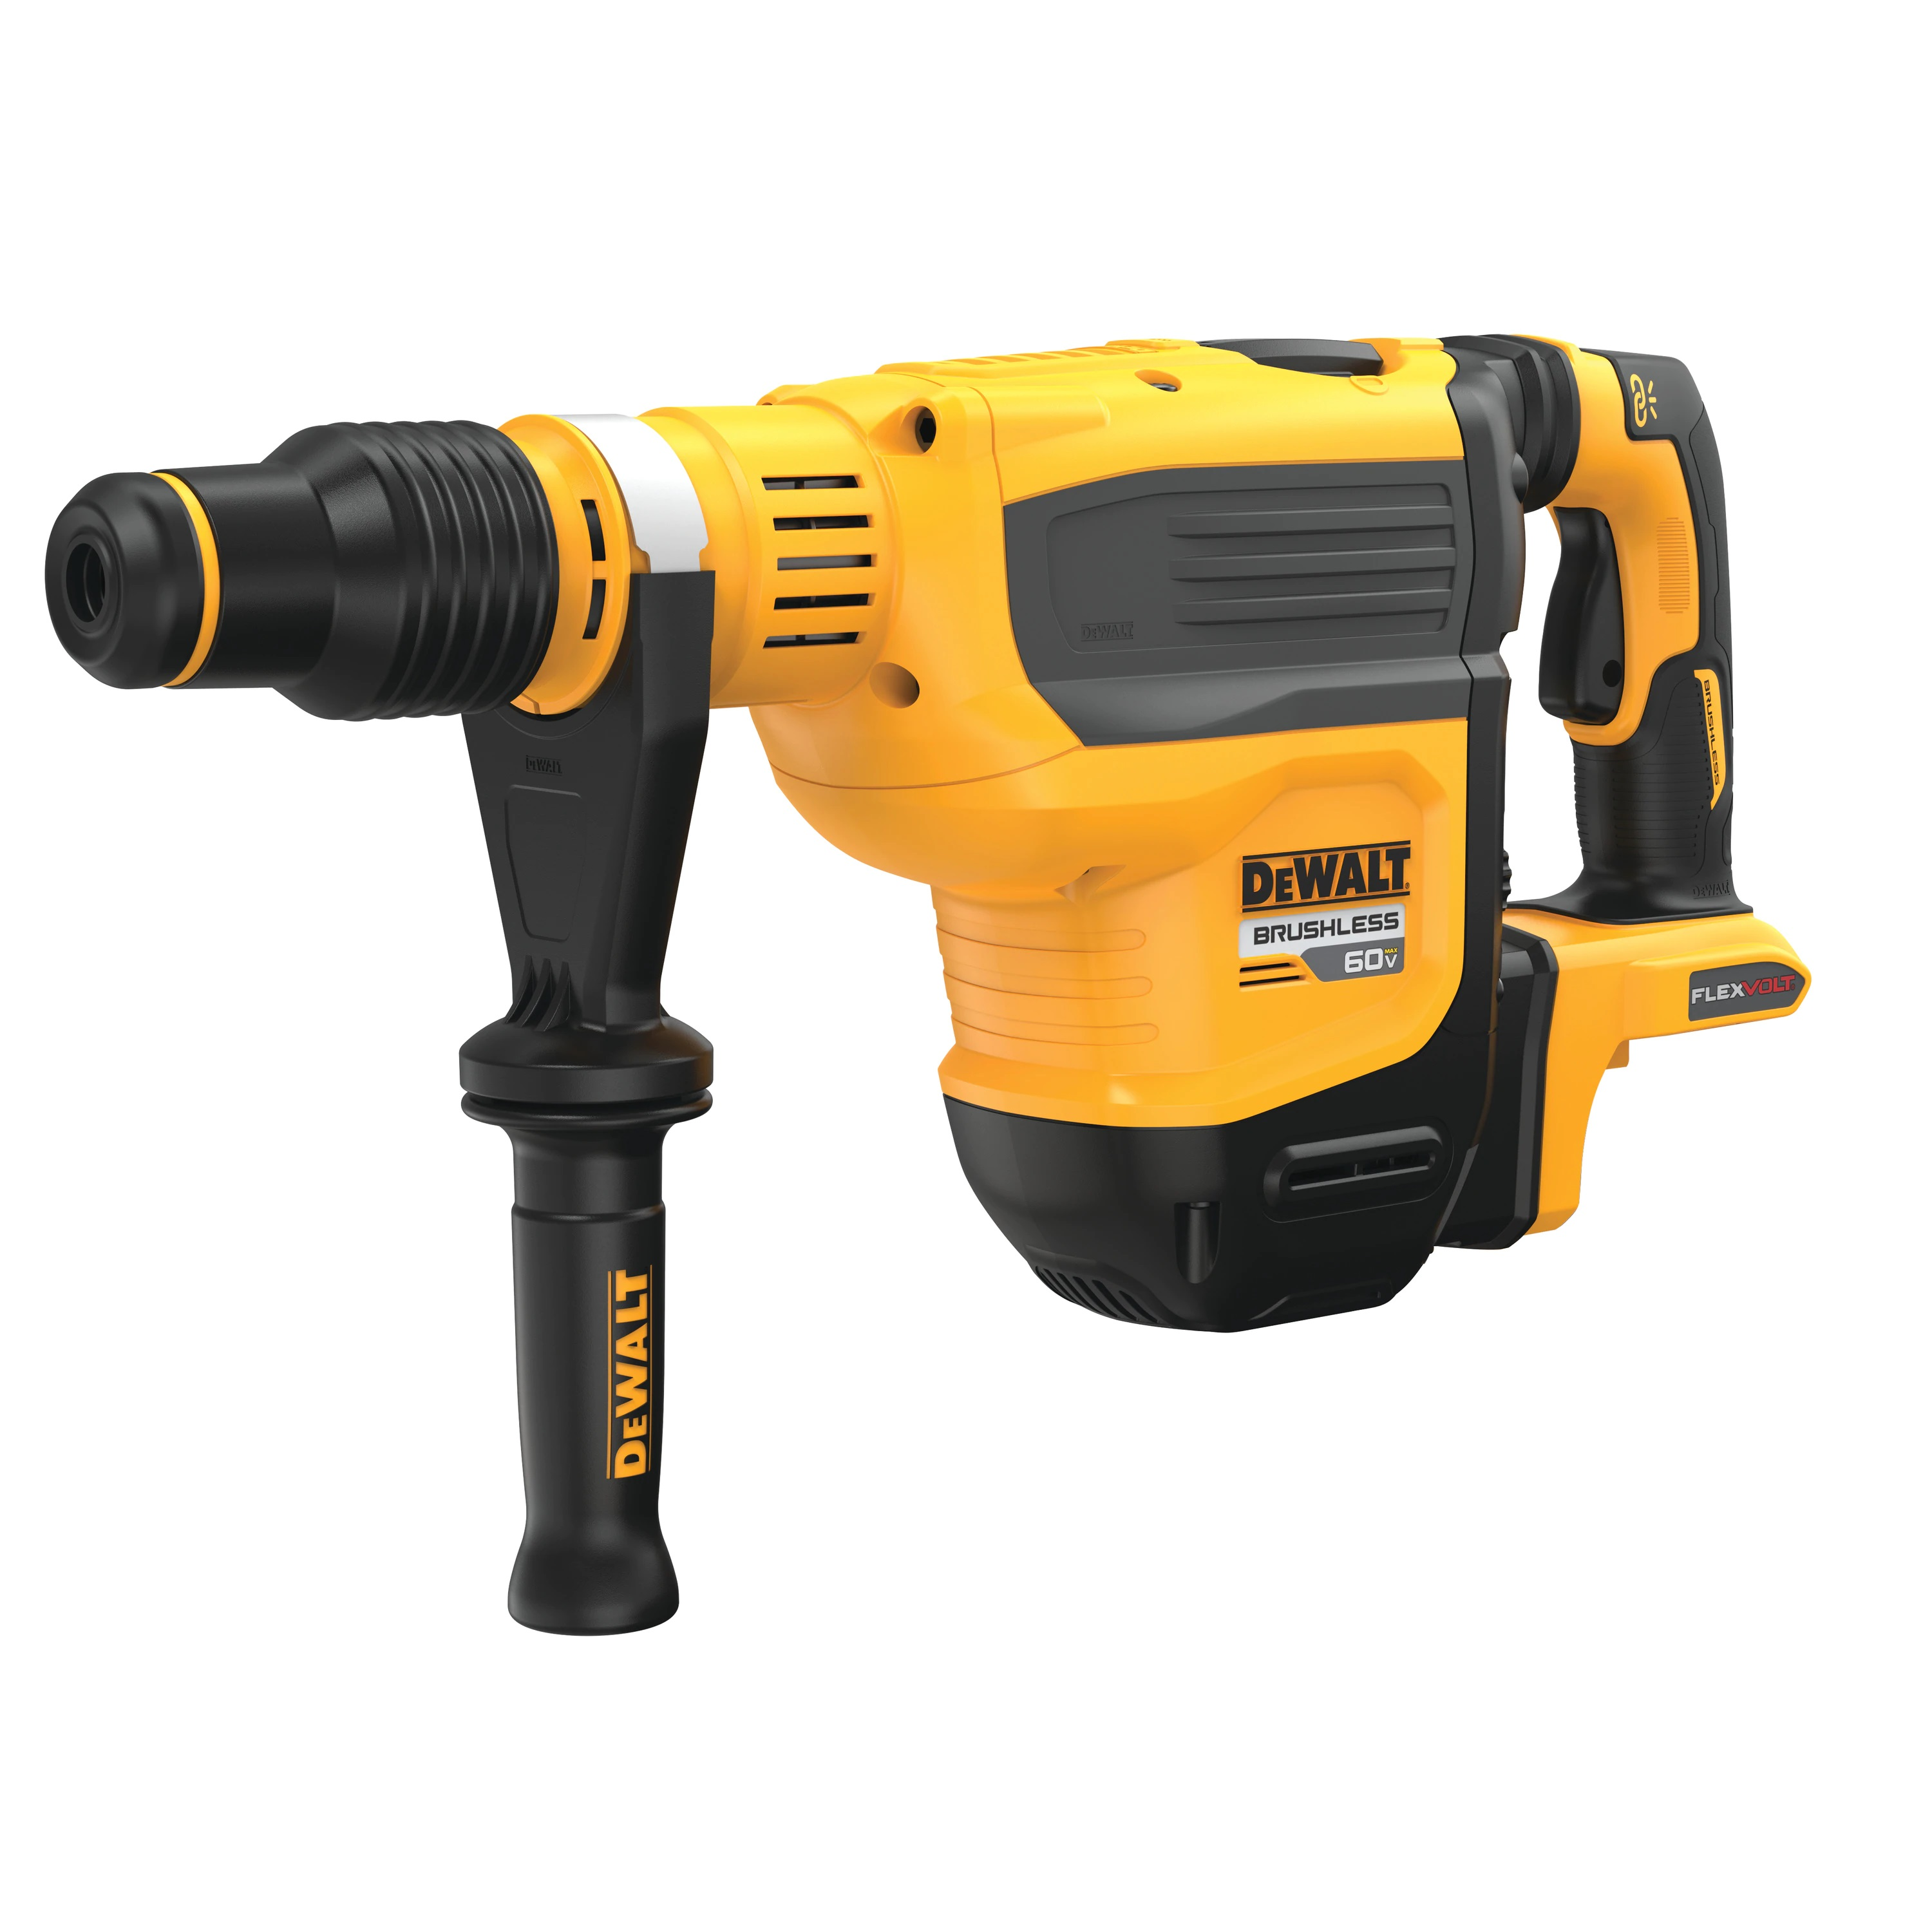 Hammer Drill - 60V MAX* 1-3/4 IN. SDS Max Brushless (TOOL ONLY) - Rotary & Demolition Hammer Drills